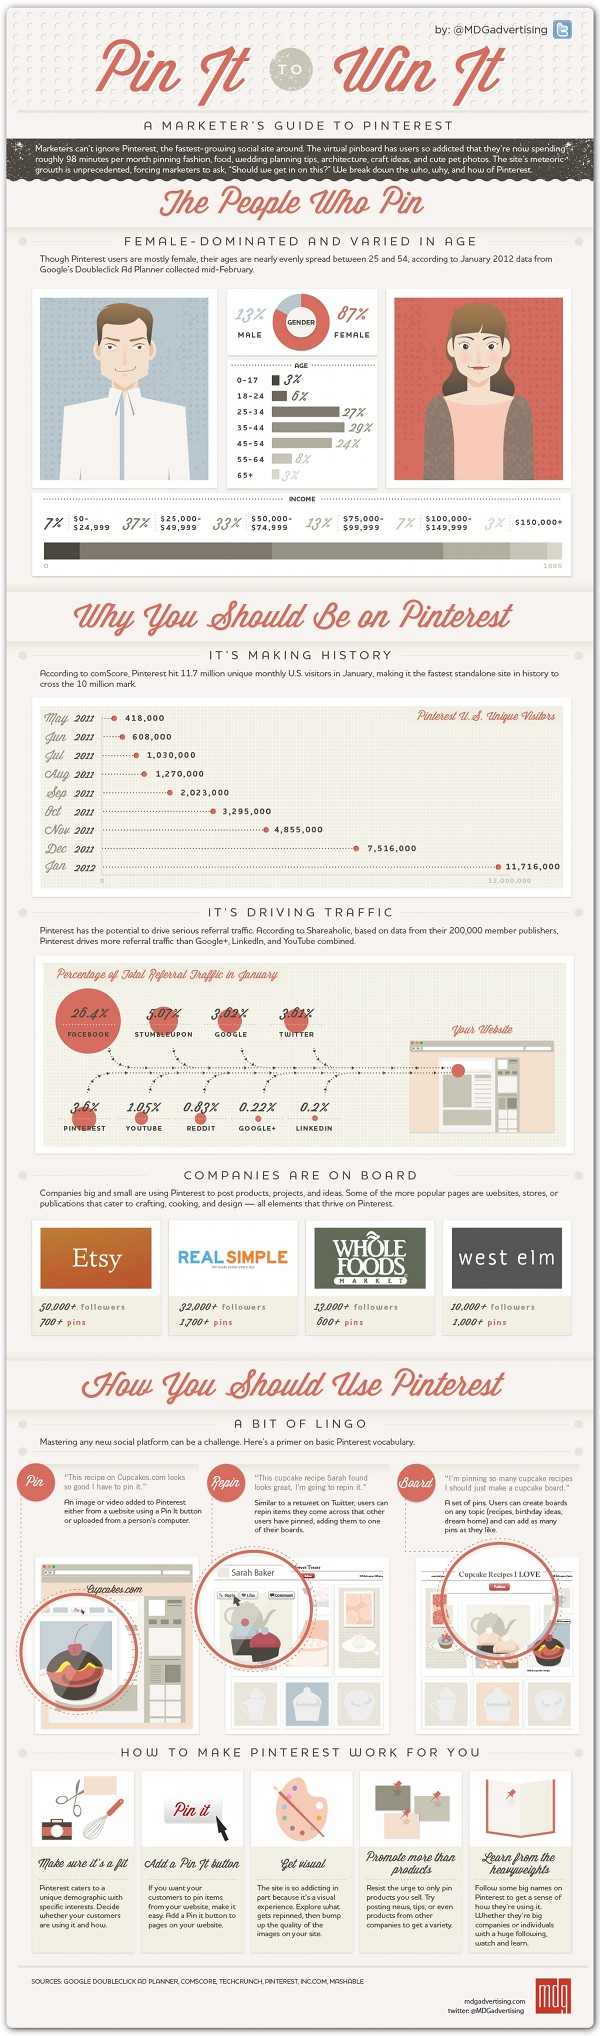 A Marketer's Guide to Pinterest | PR Daily